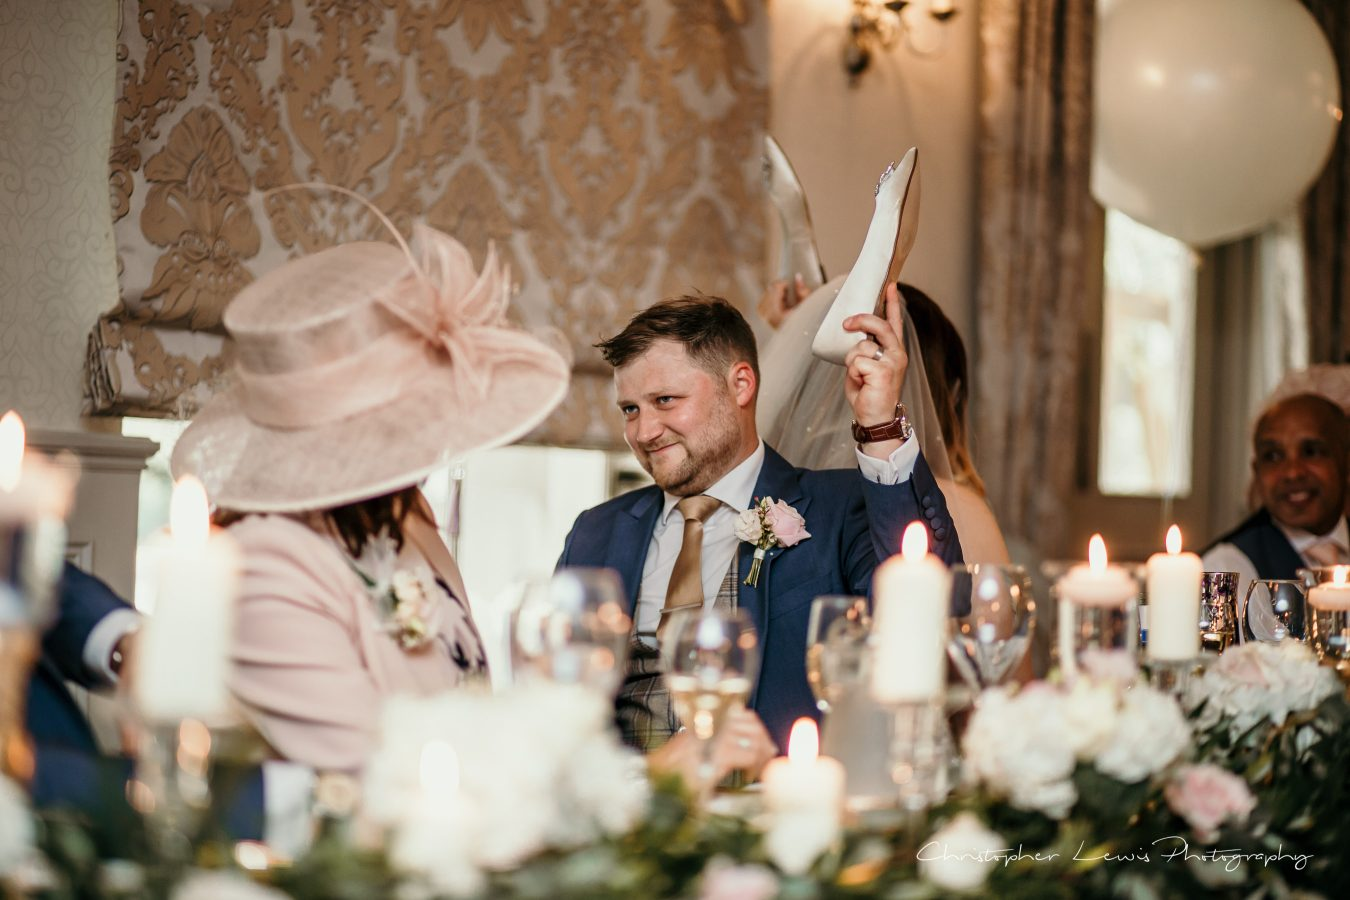 Mottram-Hall-Wedding-Christopher-Lewis-Photography- 114